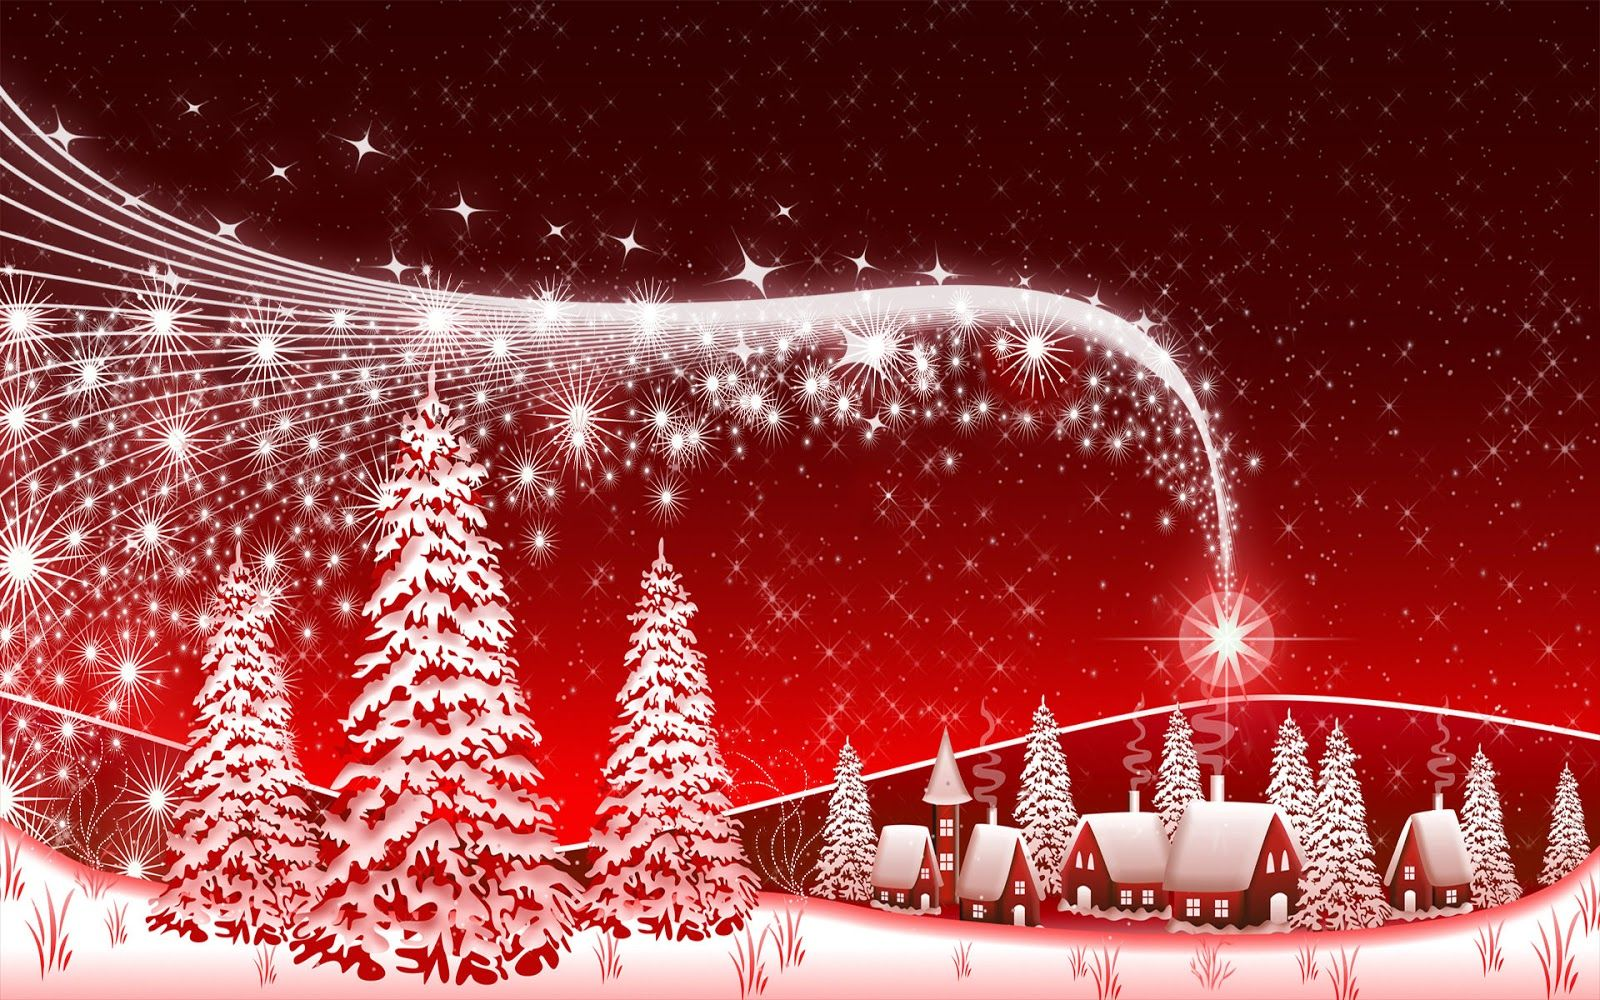 ANIMATED CHRISTMAS IMAGES Image Galleries